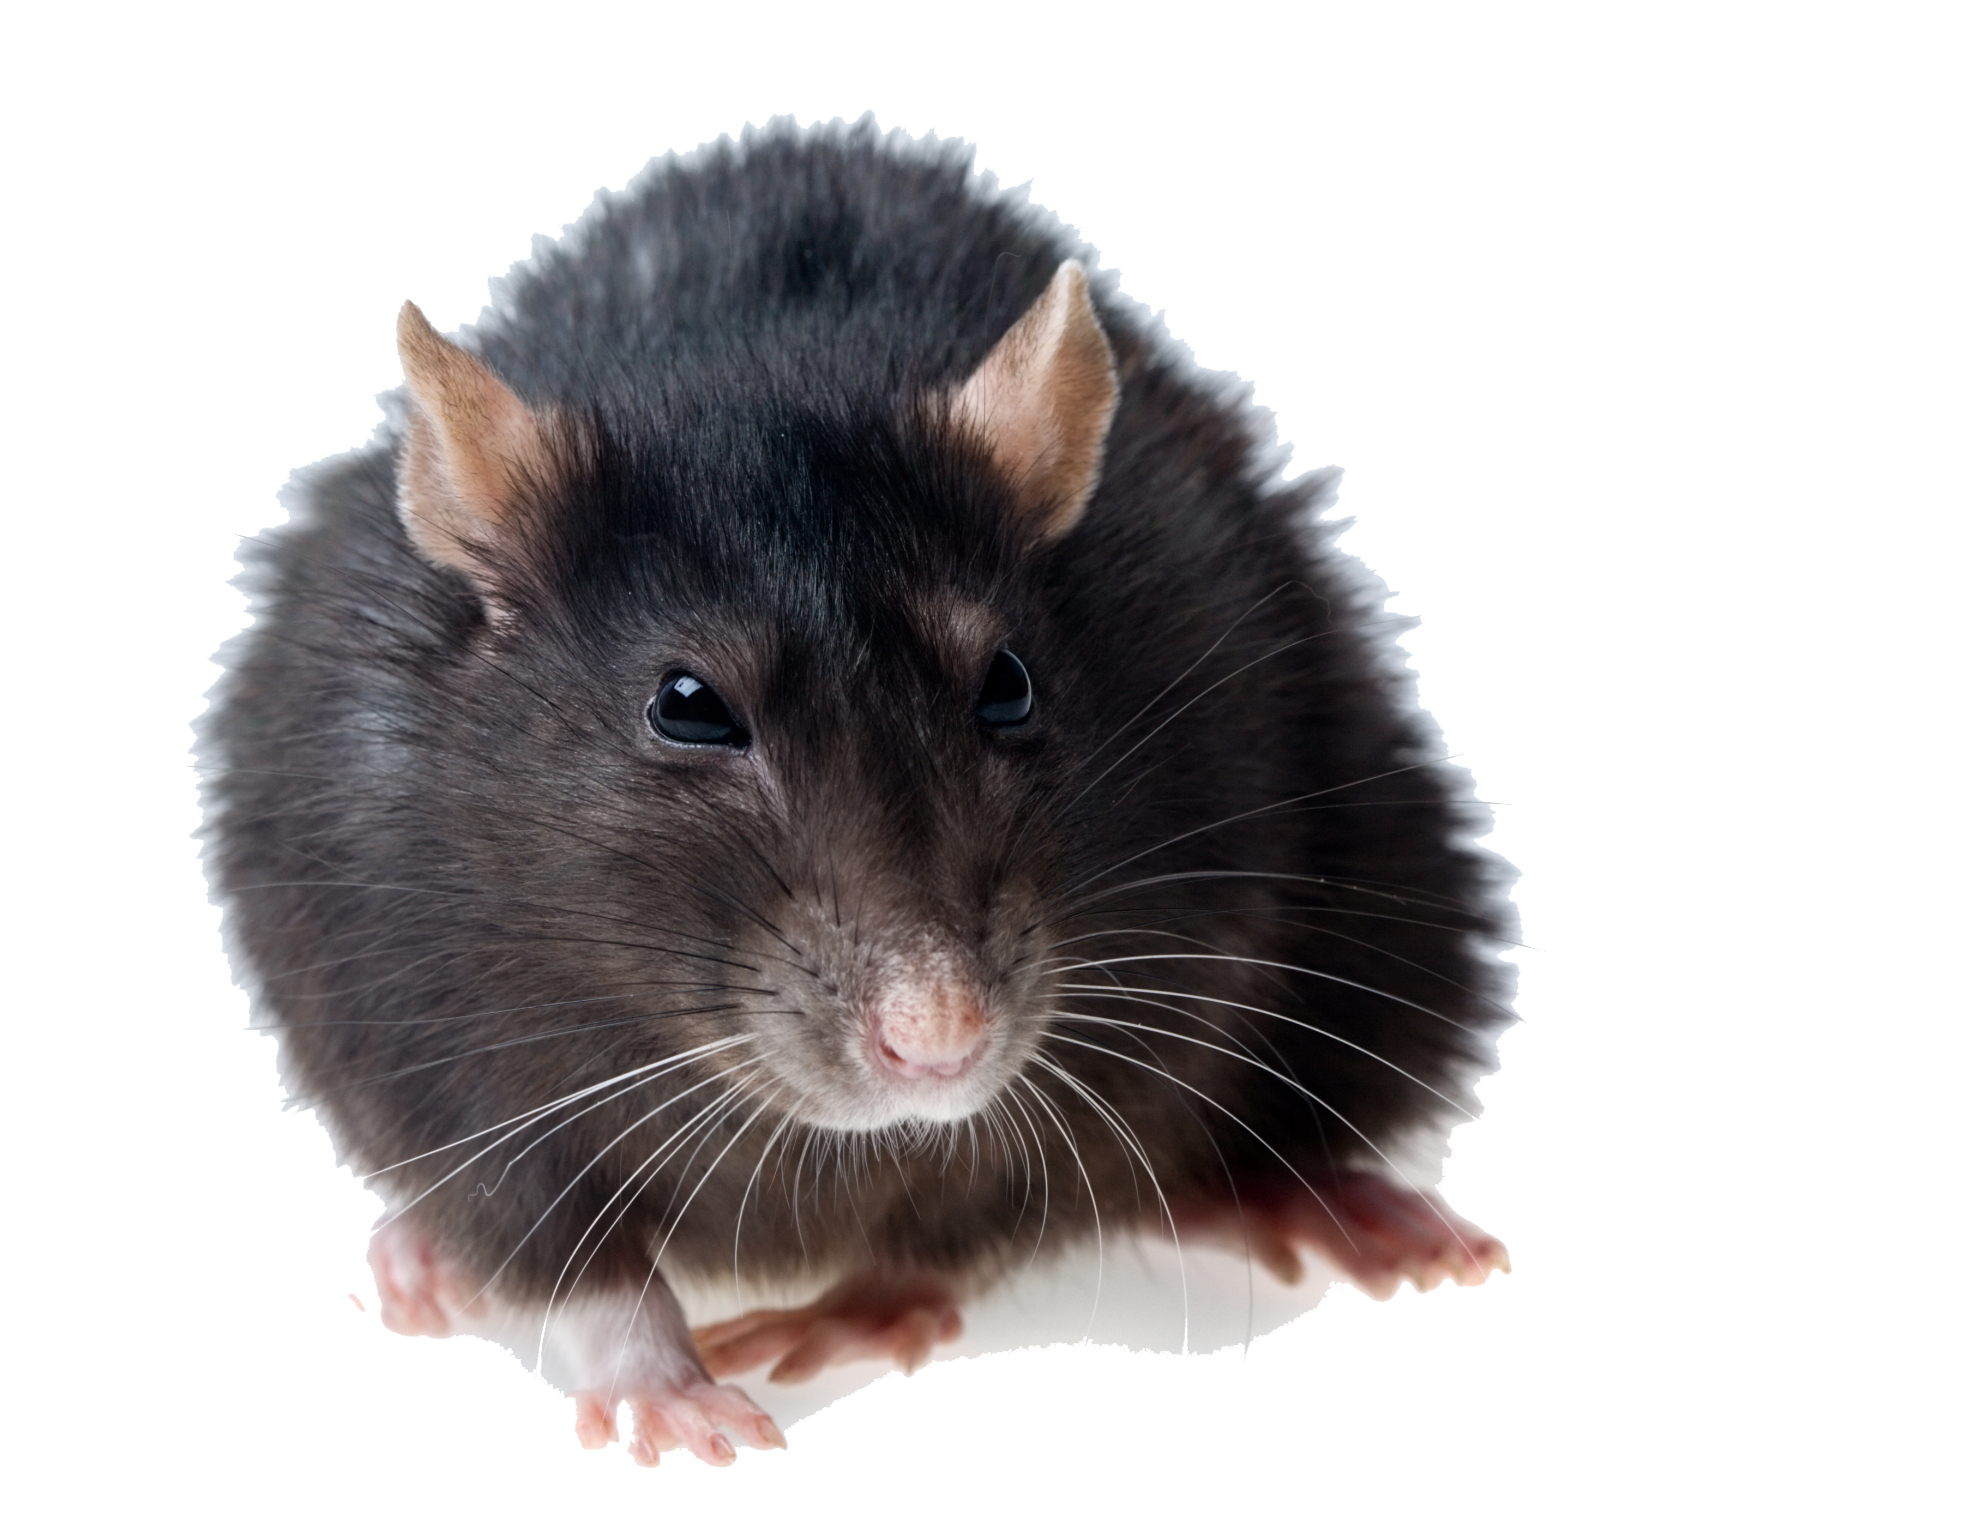 Rat PNG Photos - Rat PNG